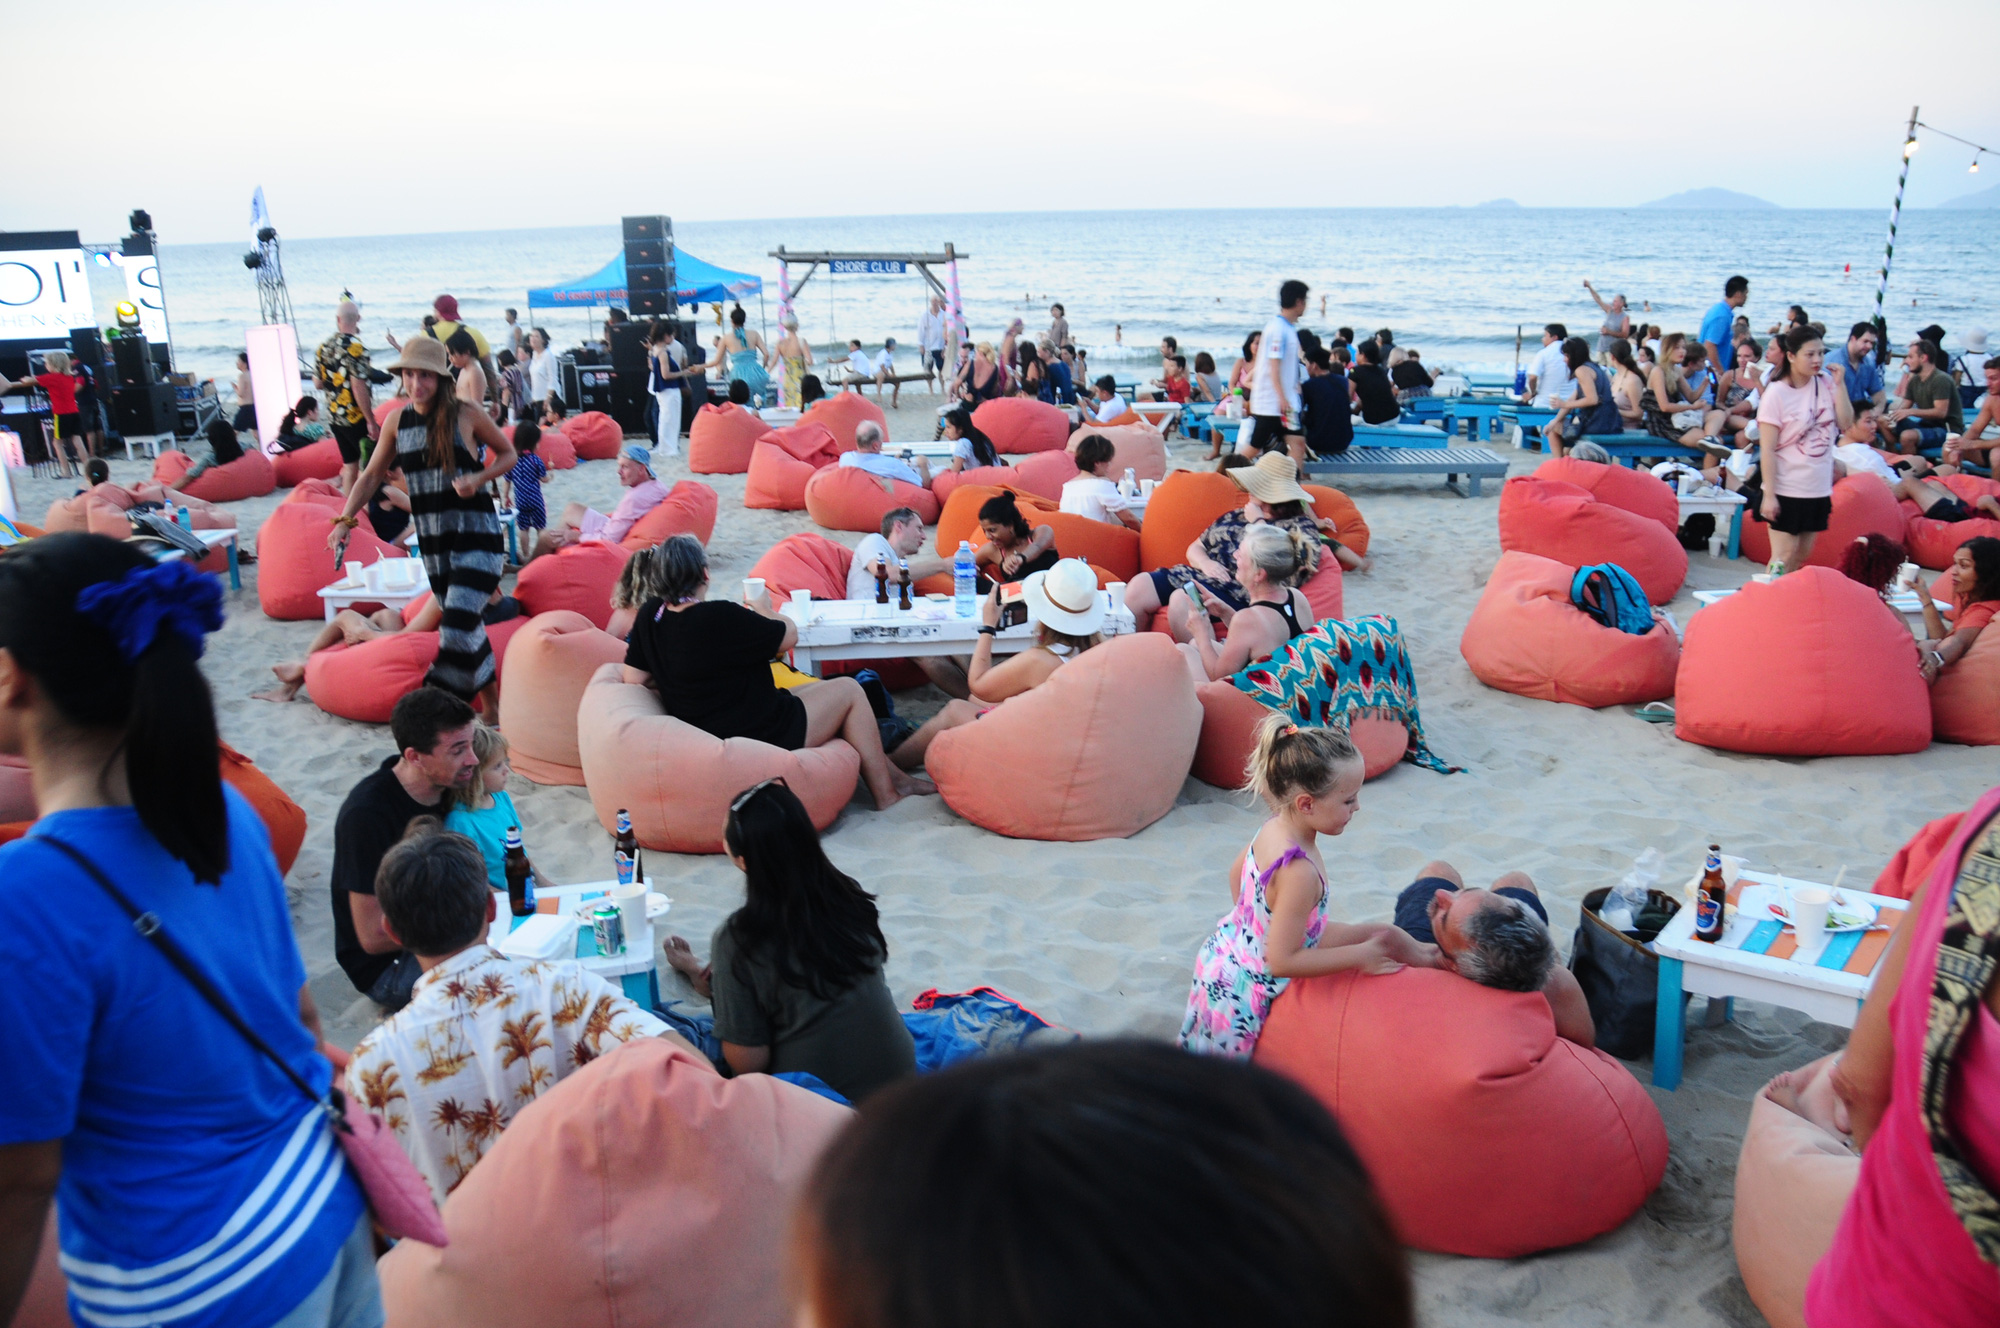 Visitors enjoy their food and music on the beach at the 2020 An Bang Beach Food & Music Festival in Hoi An City, Quang Nam Province, Vietnam, July 18, 2020. Photo: B.D. / Tuoi Tre